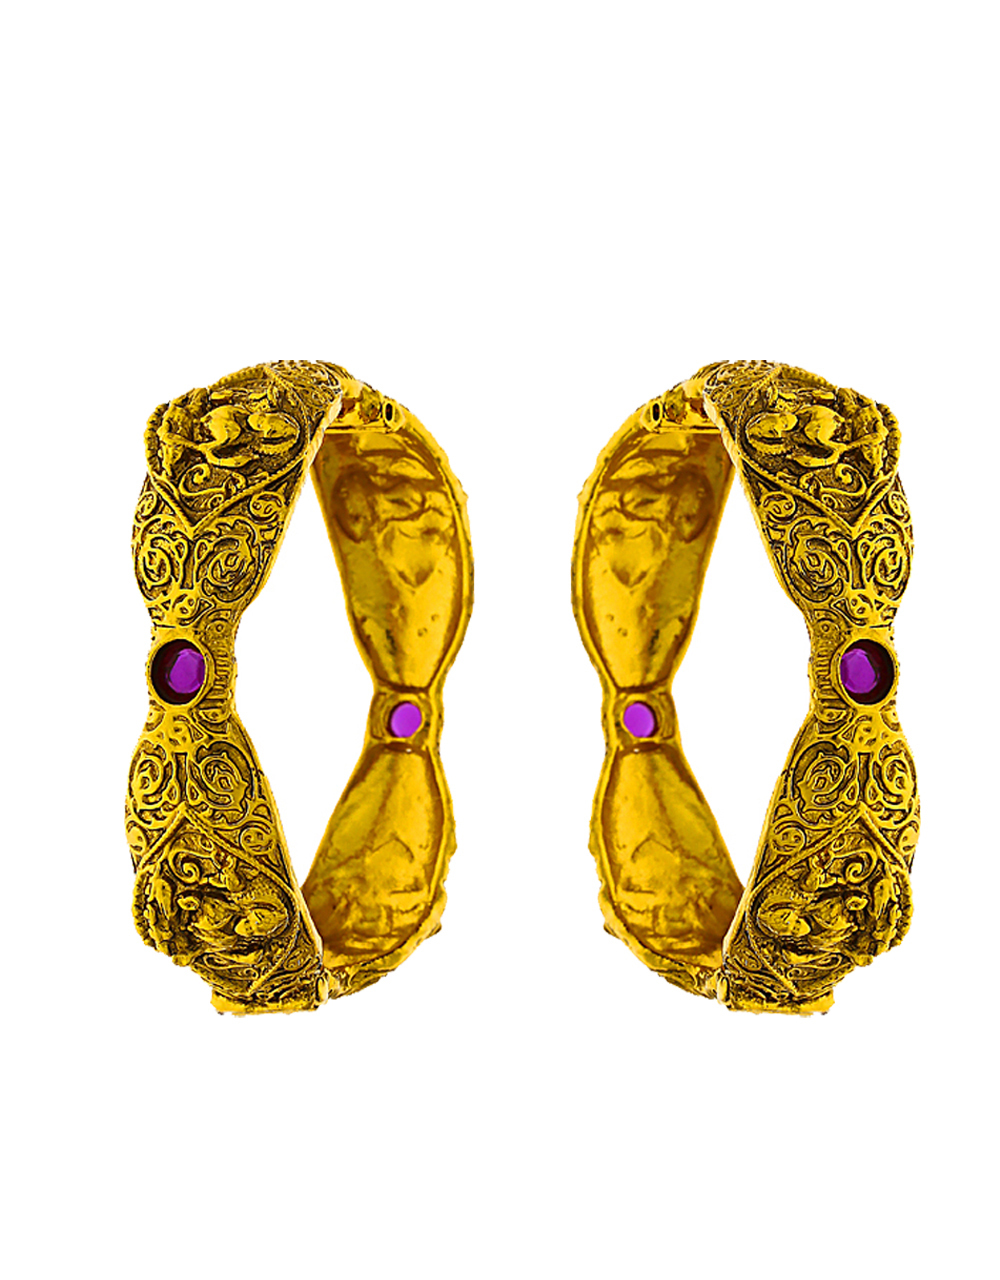 Ethnic Designer With Matte Gold Finish Decked With Small Pink Stone In Centre Of Design For Women